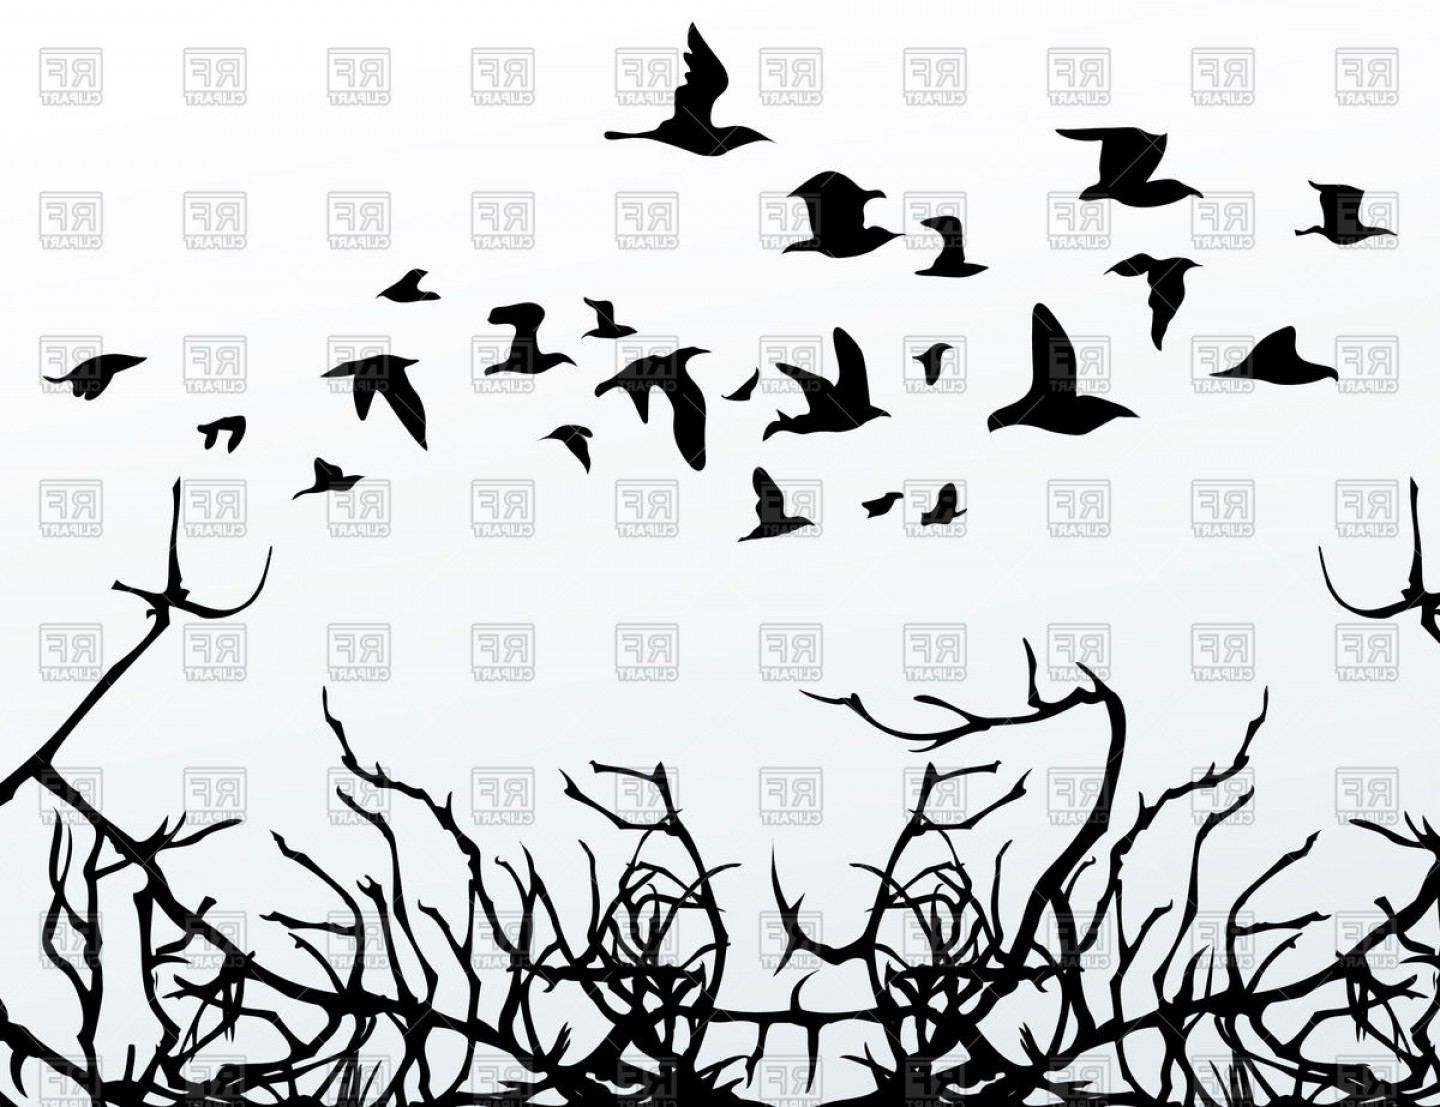 Black And White Bird Free Vector Graphics: Silhouettes Of Birds And Branches Vector Clipart